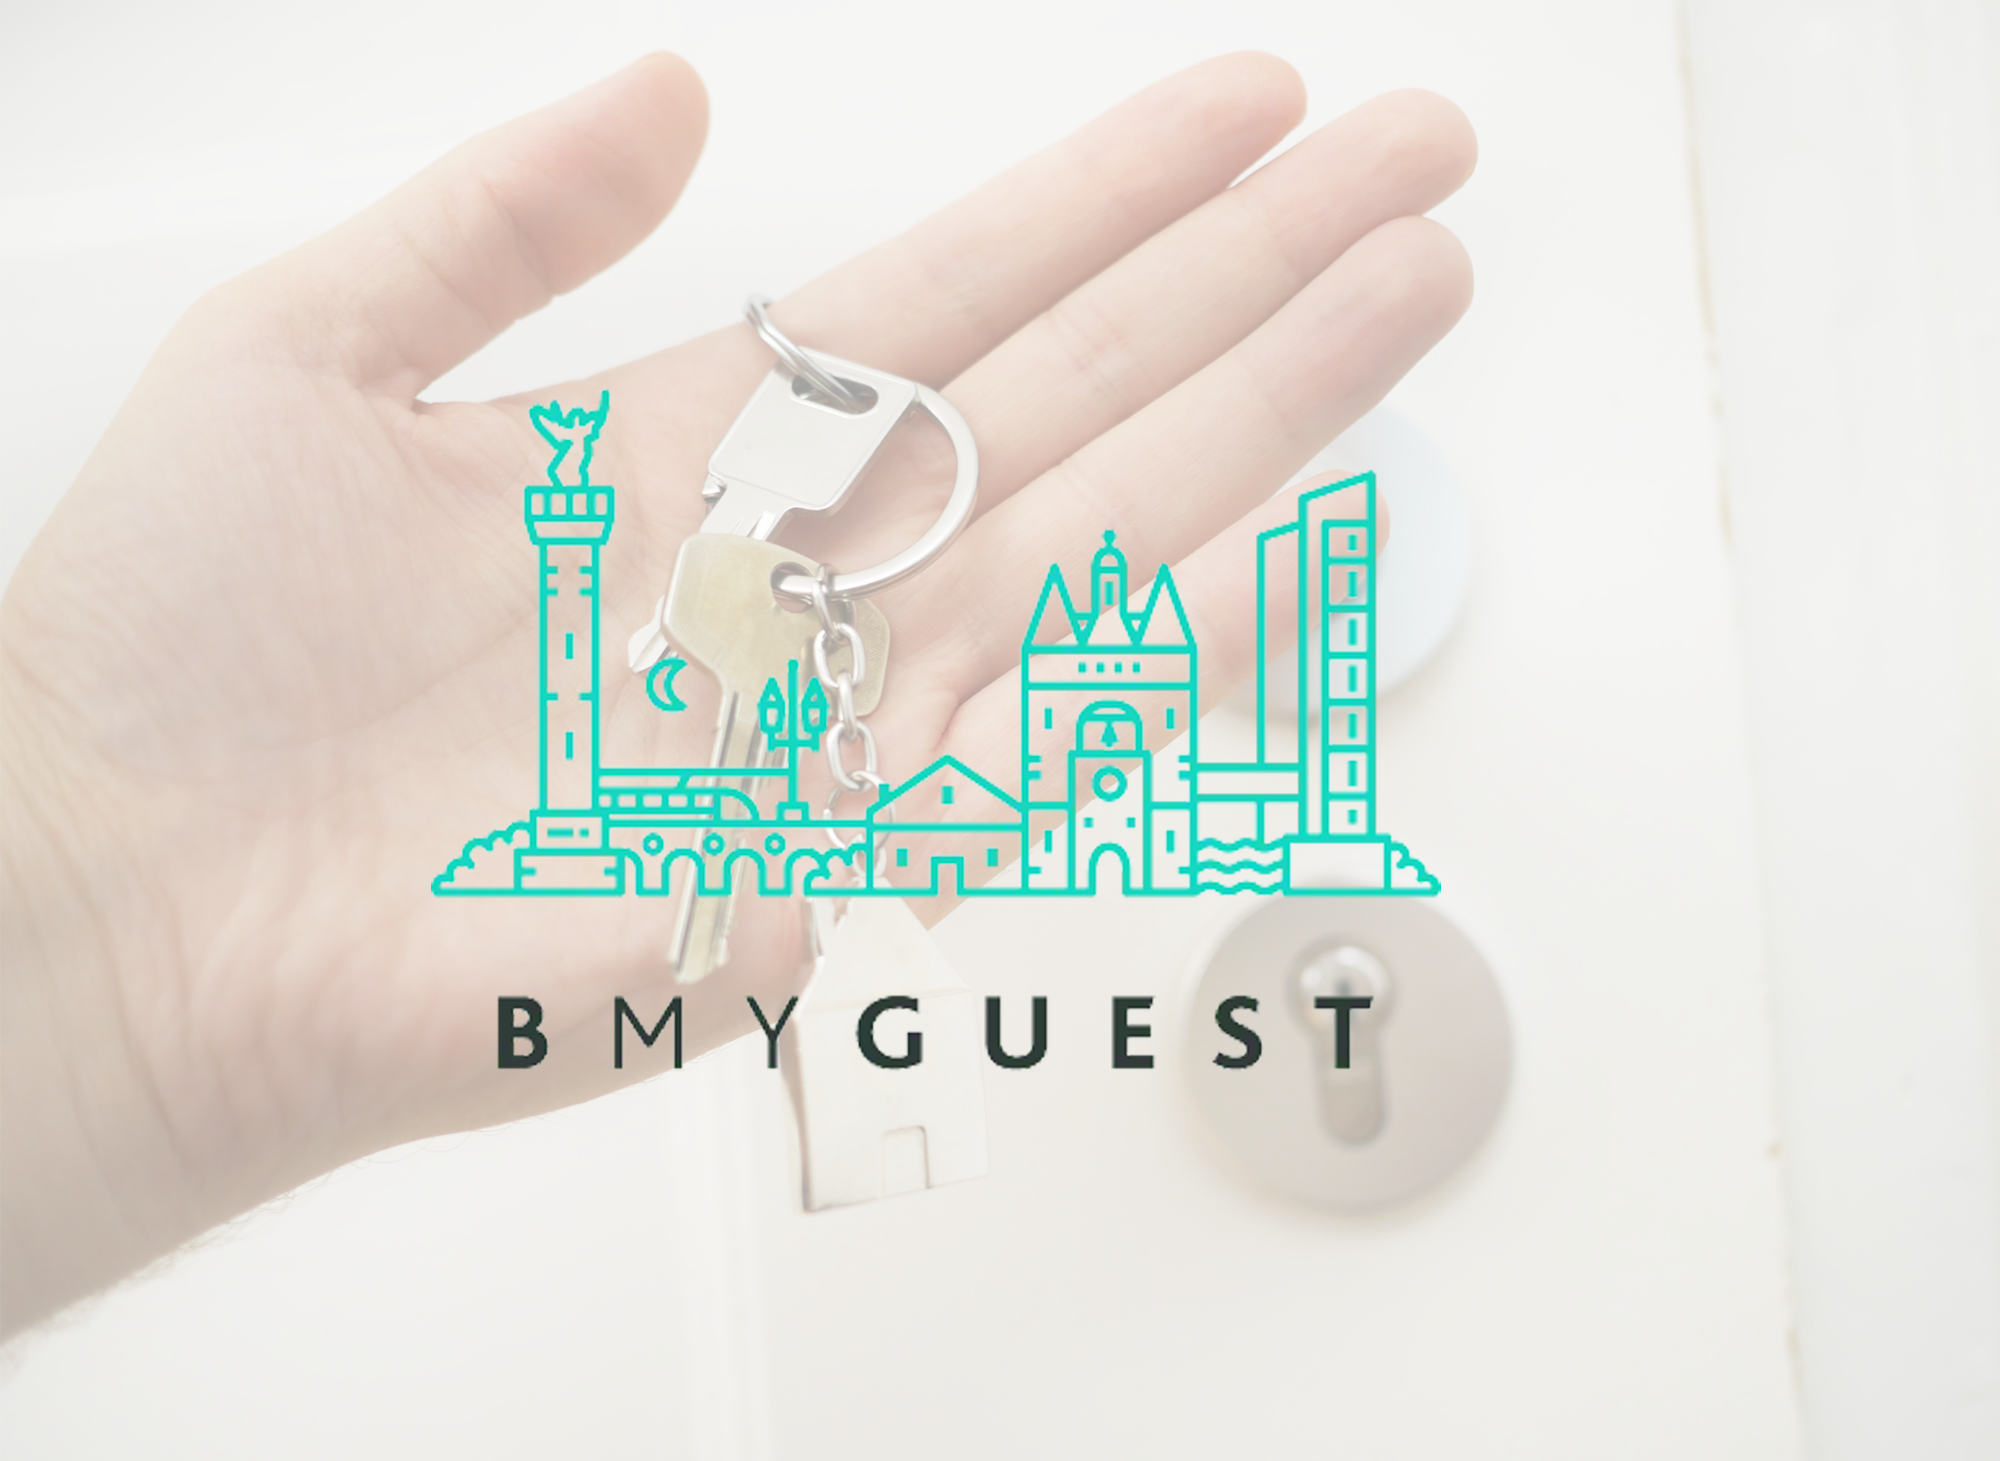 bmyguest-site-marchand-service-reference